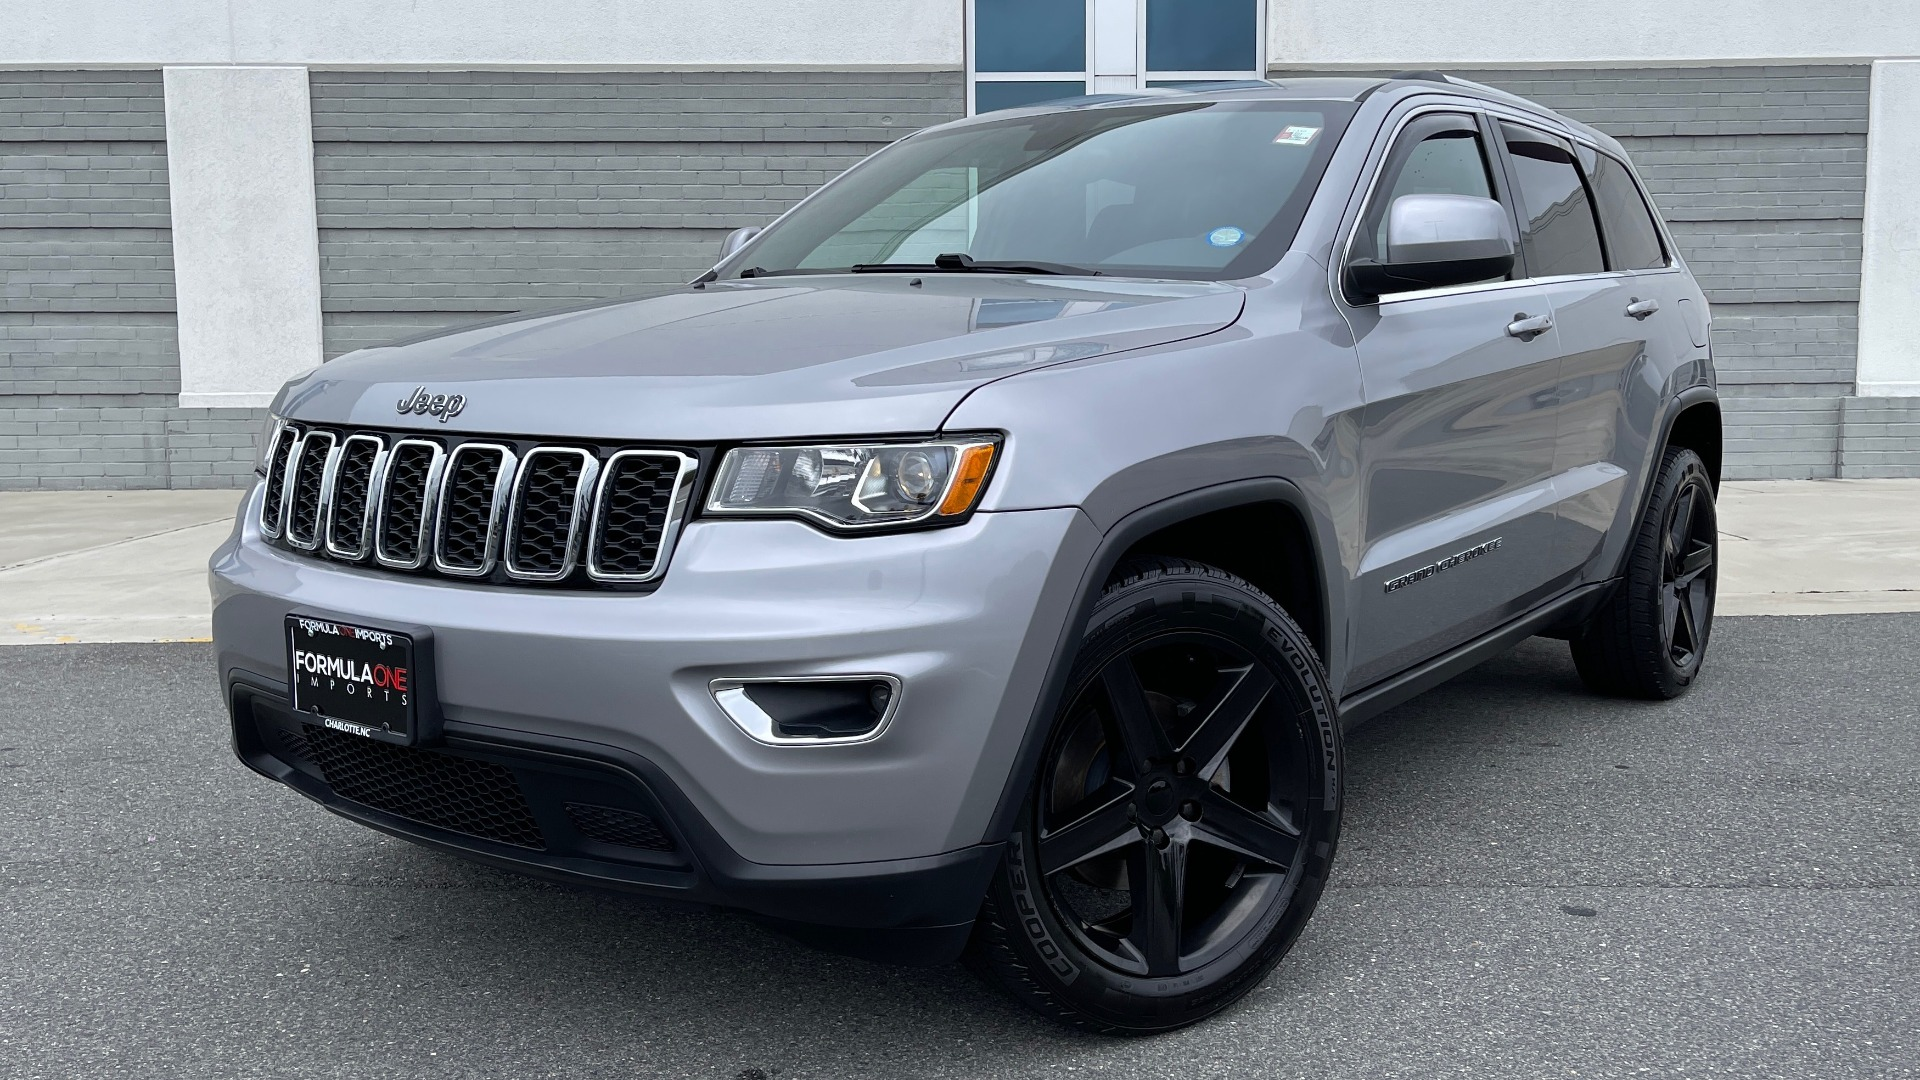 Used 2017 Jeep GRAND CHEROKEE LAREDO E 4X4 / KEYLESS-GO / 8.4IN TOUCH SCREEN / REARVIEW for sale $27,595 at Formula Imports in Charlotte NC 28227 1